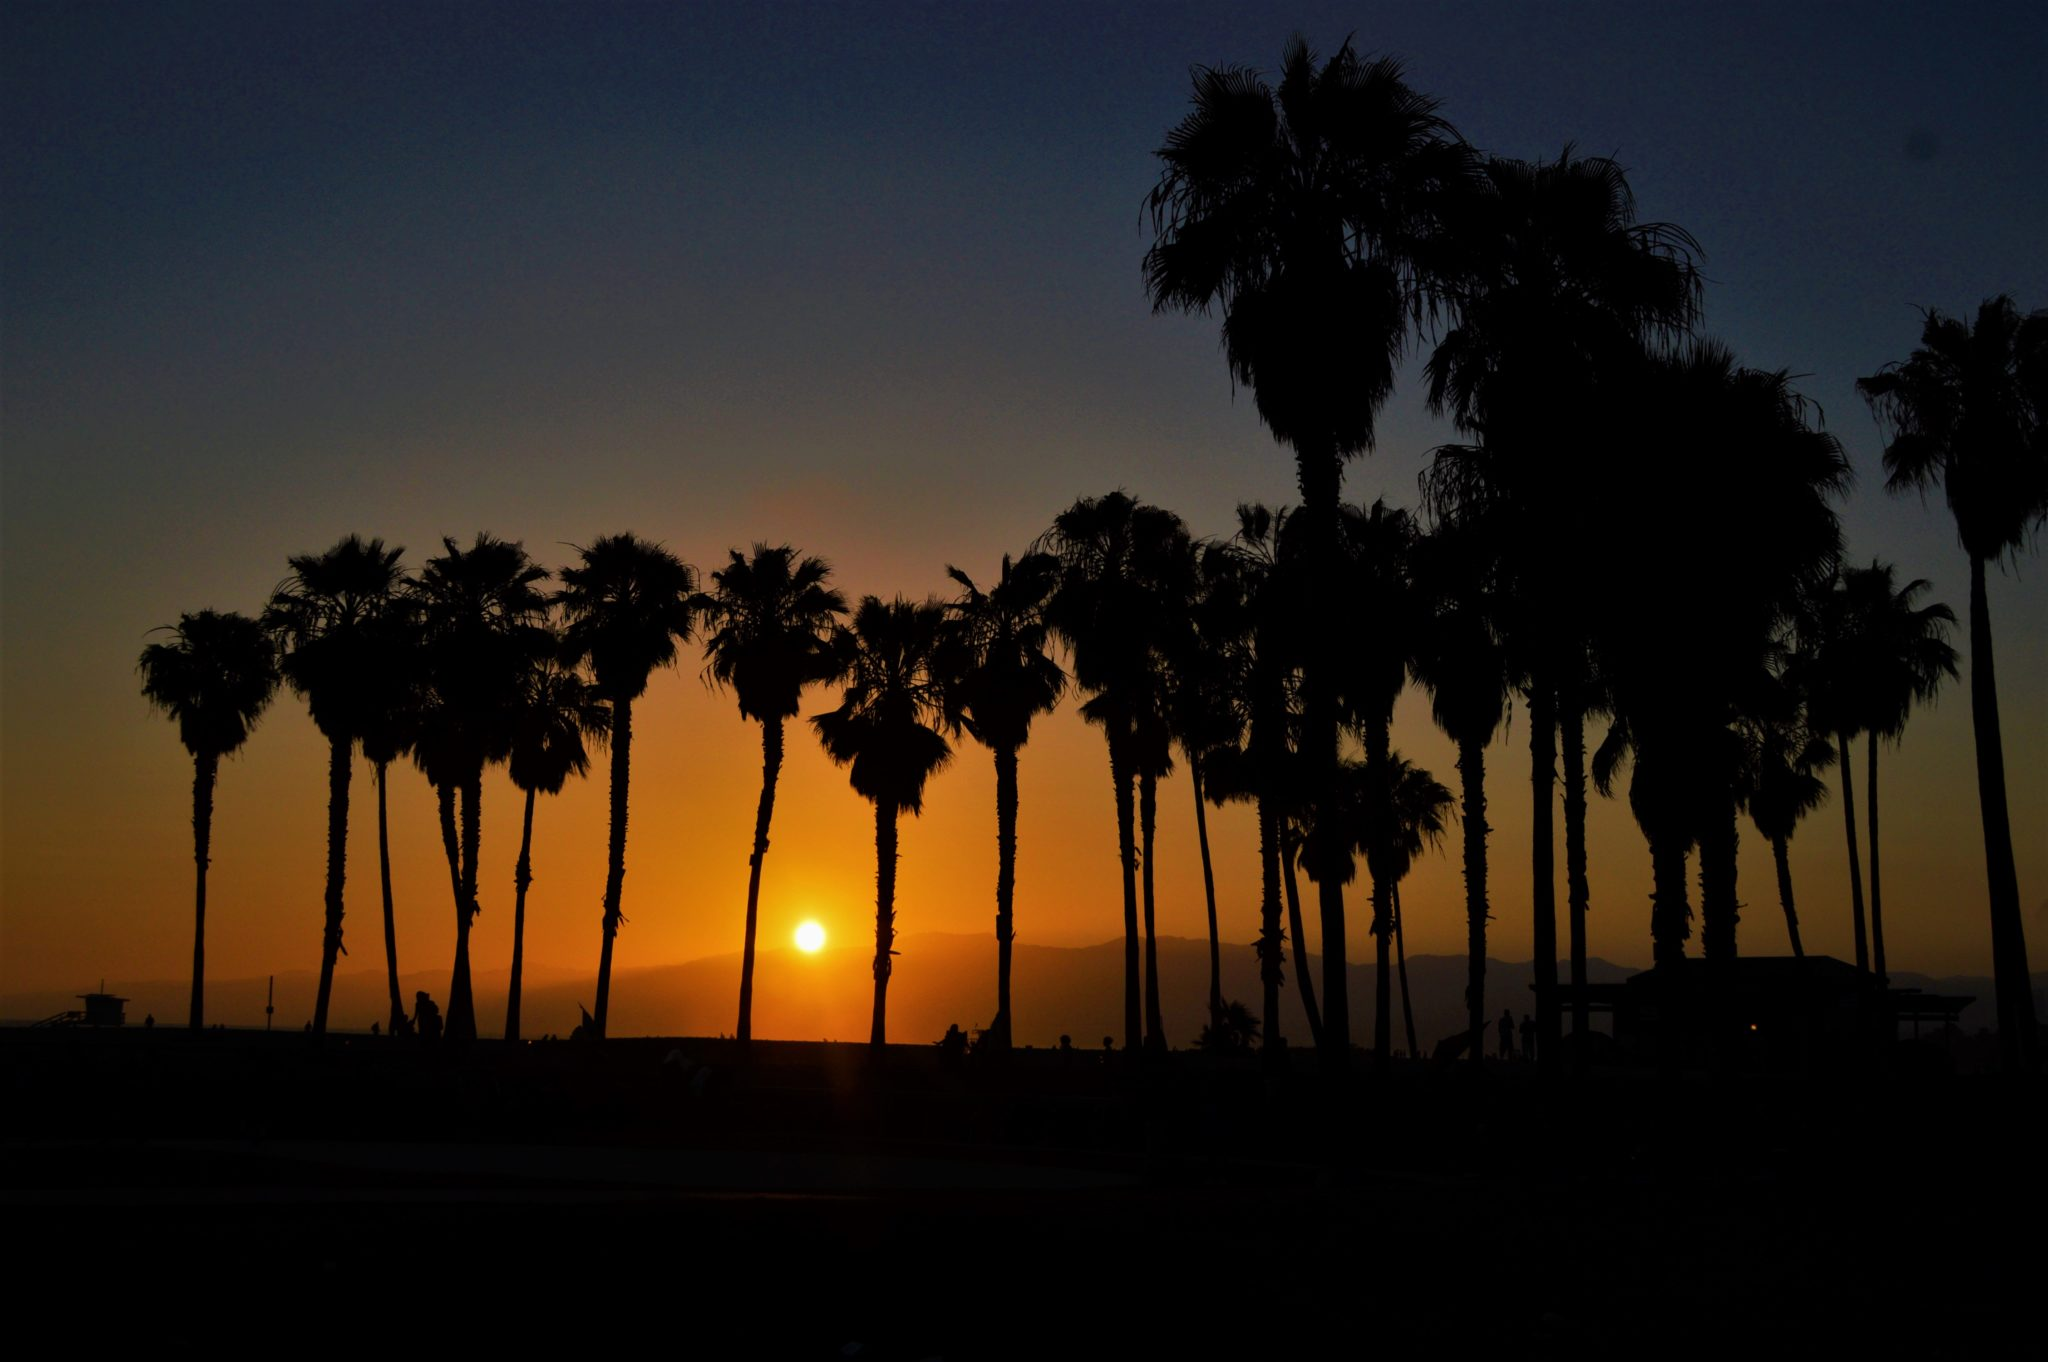 Sunset Santa monica mountains, venice beach, top things to do in los angeles